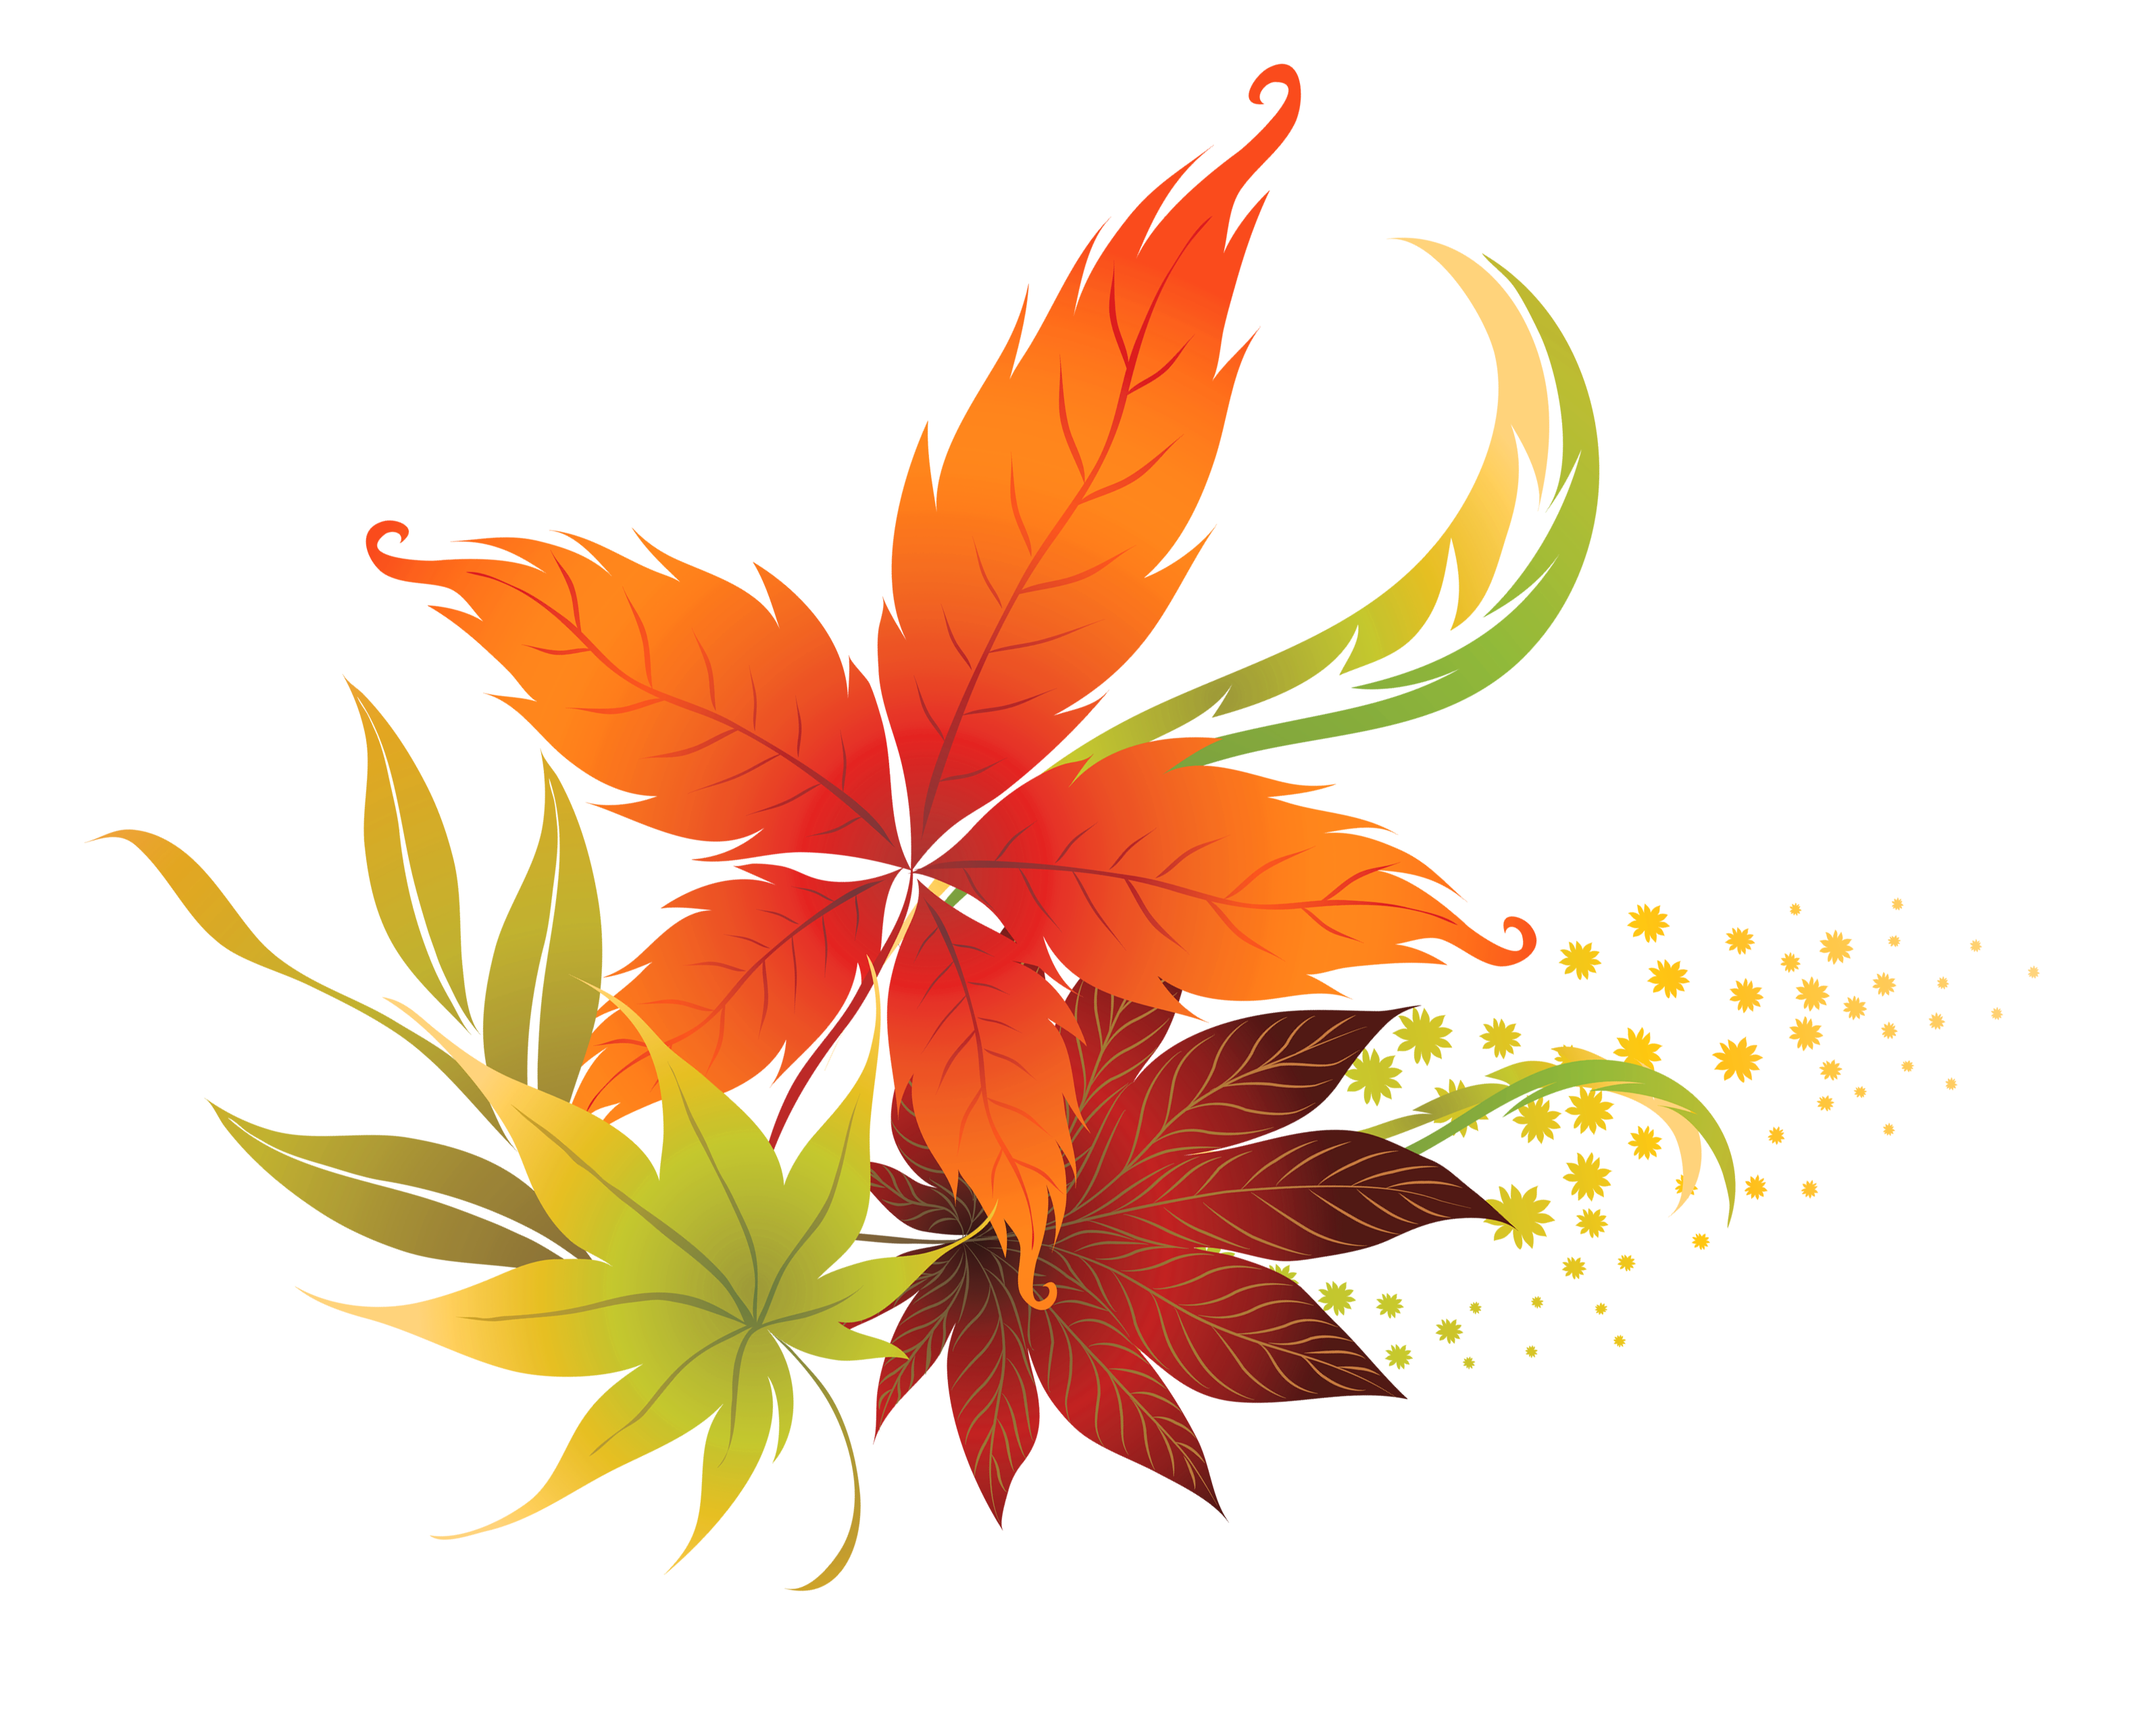 Fall leaves 7 free autumn and fall clip art collections 2 - Leaves paintings and drawings ...